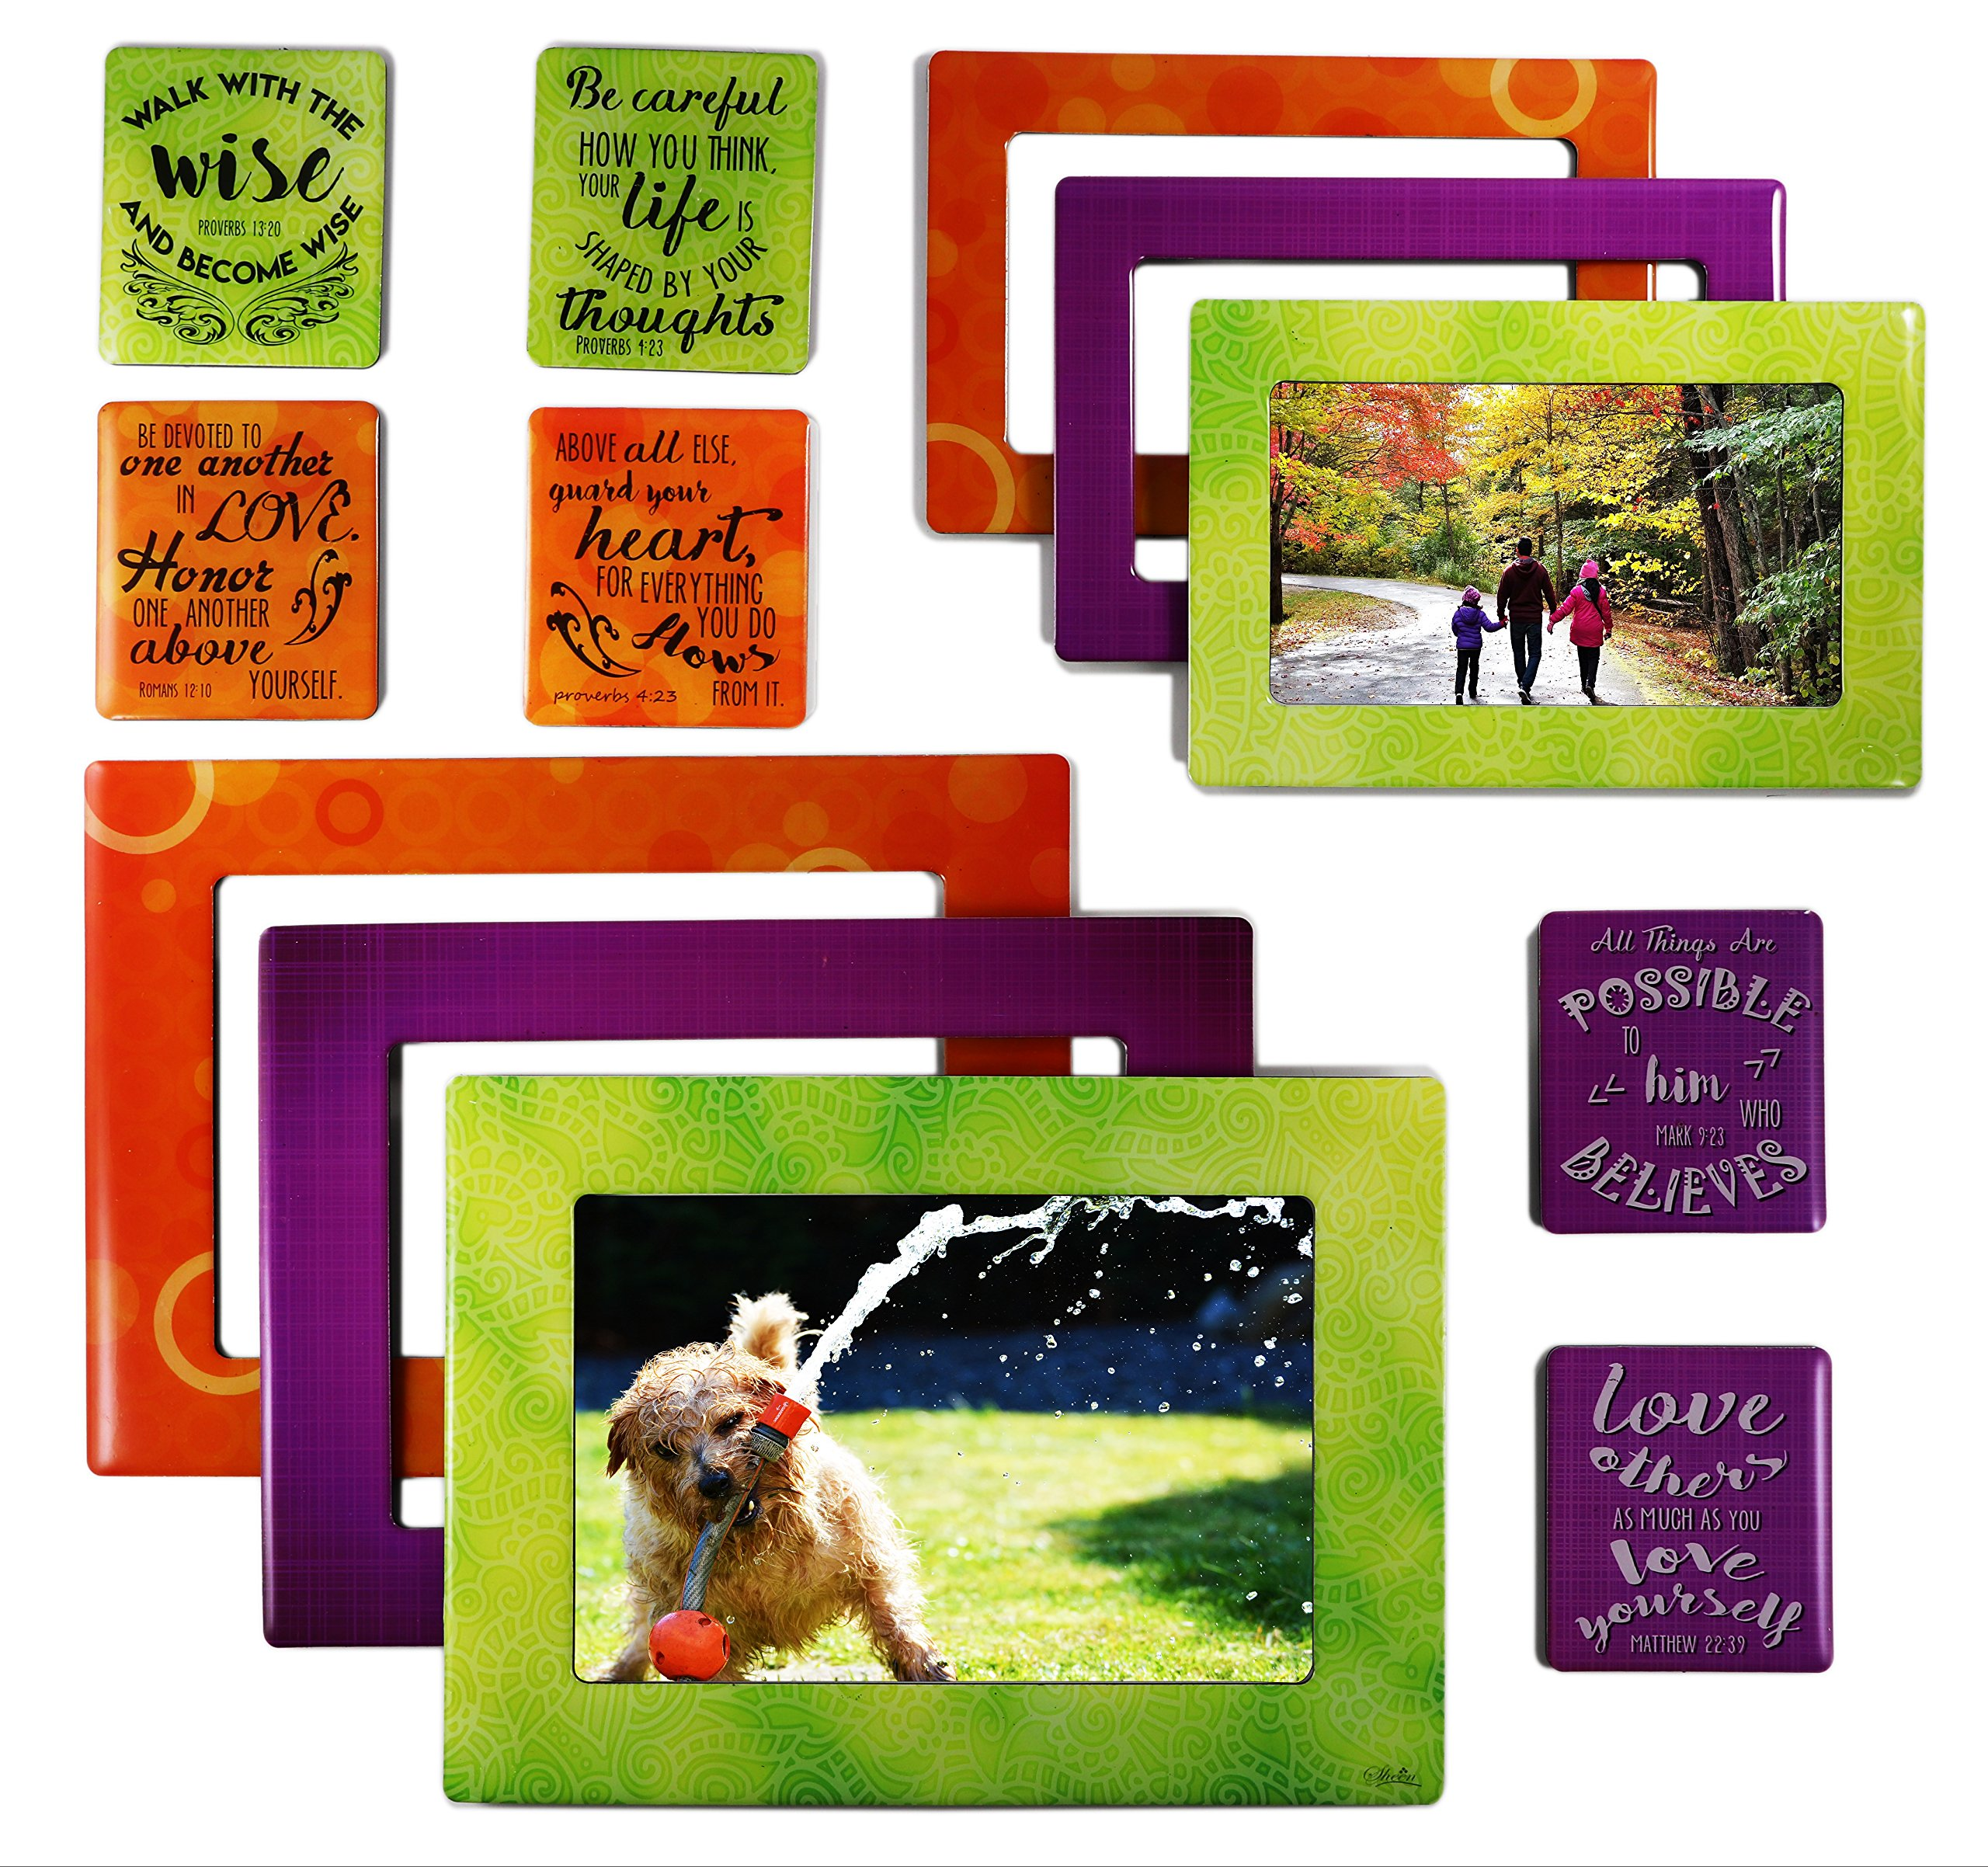 Faith 12 Piece Premium Quality Magnetic Picture Frames and Refrigerator Magnets with Inspirational Bible Quotes Photo Collage by Sheen Photo Sizes 5x7 4x6 3.5x5 2.5x3 Wallet - Use at Home or Gift by Sheen